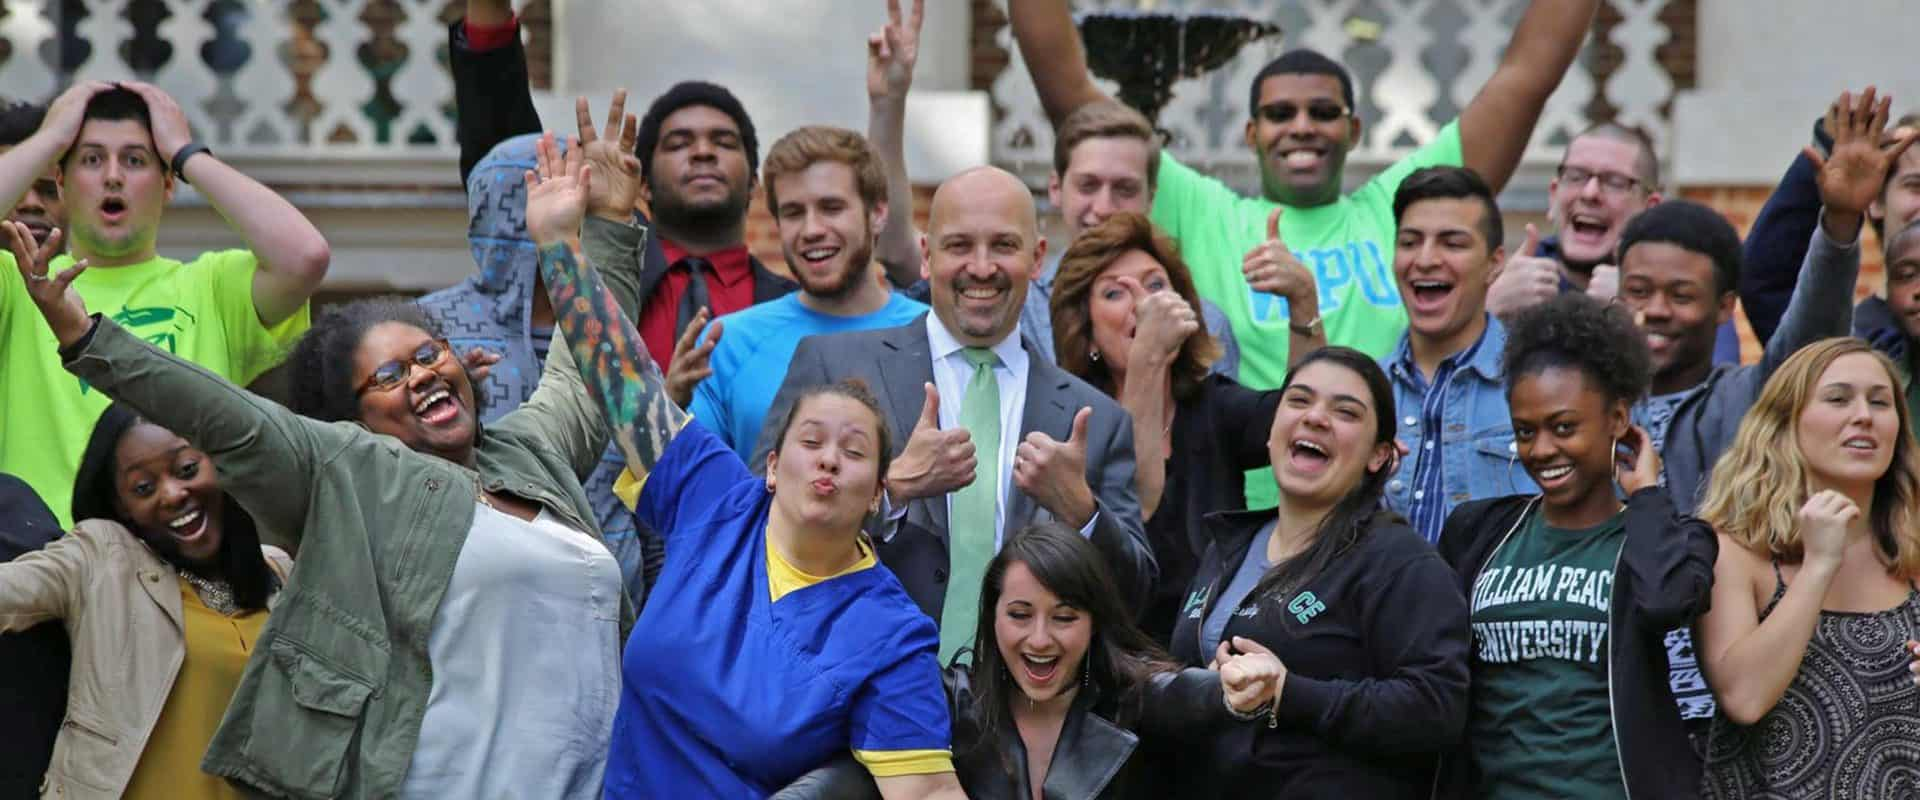 Dr. Brian Ralph, President of William Peace University and WPU Students.